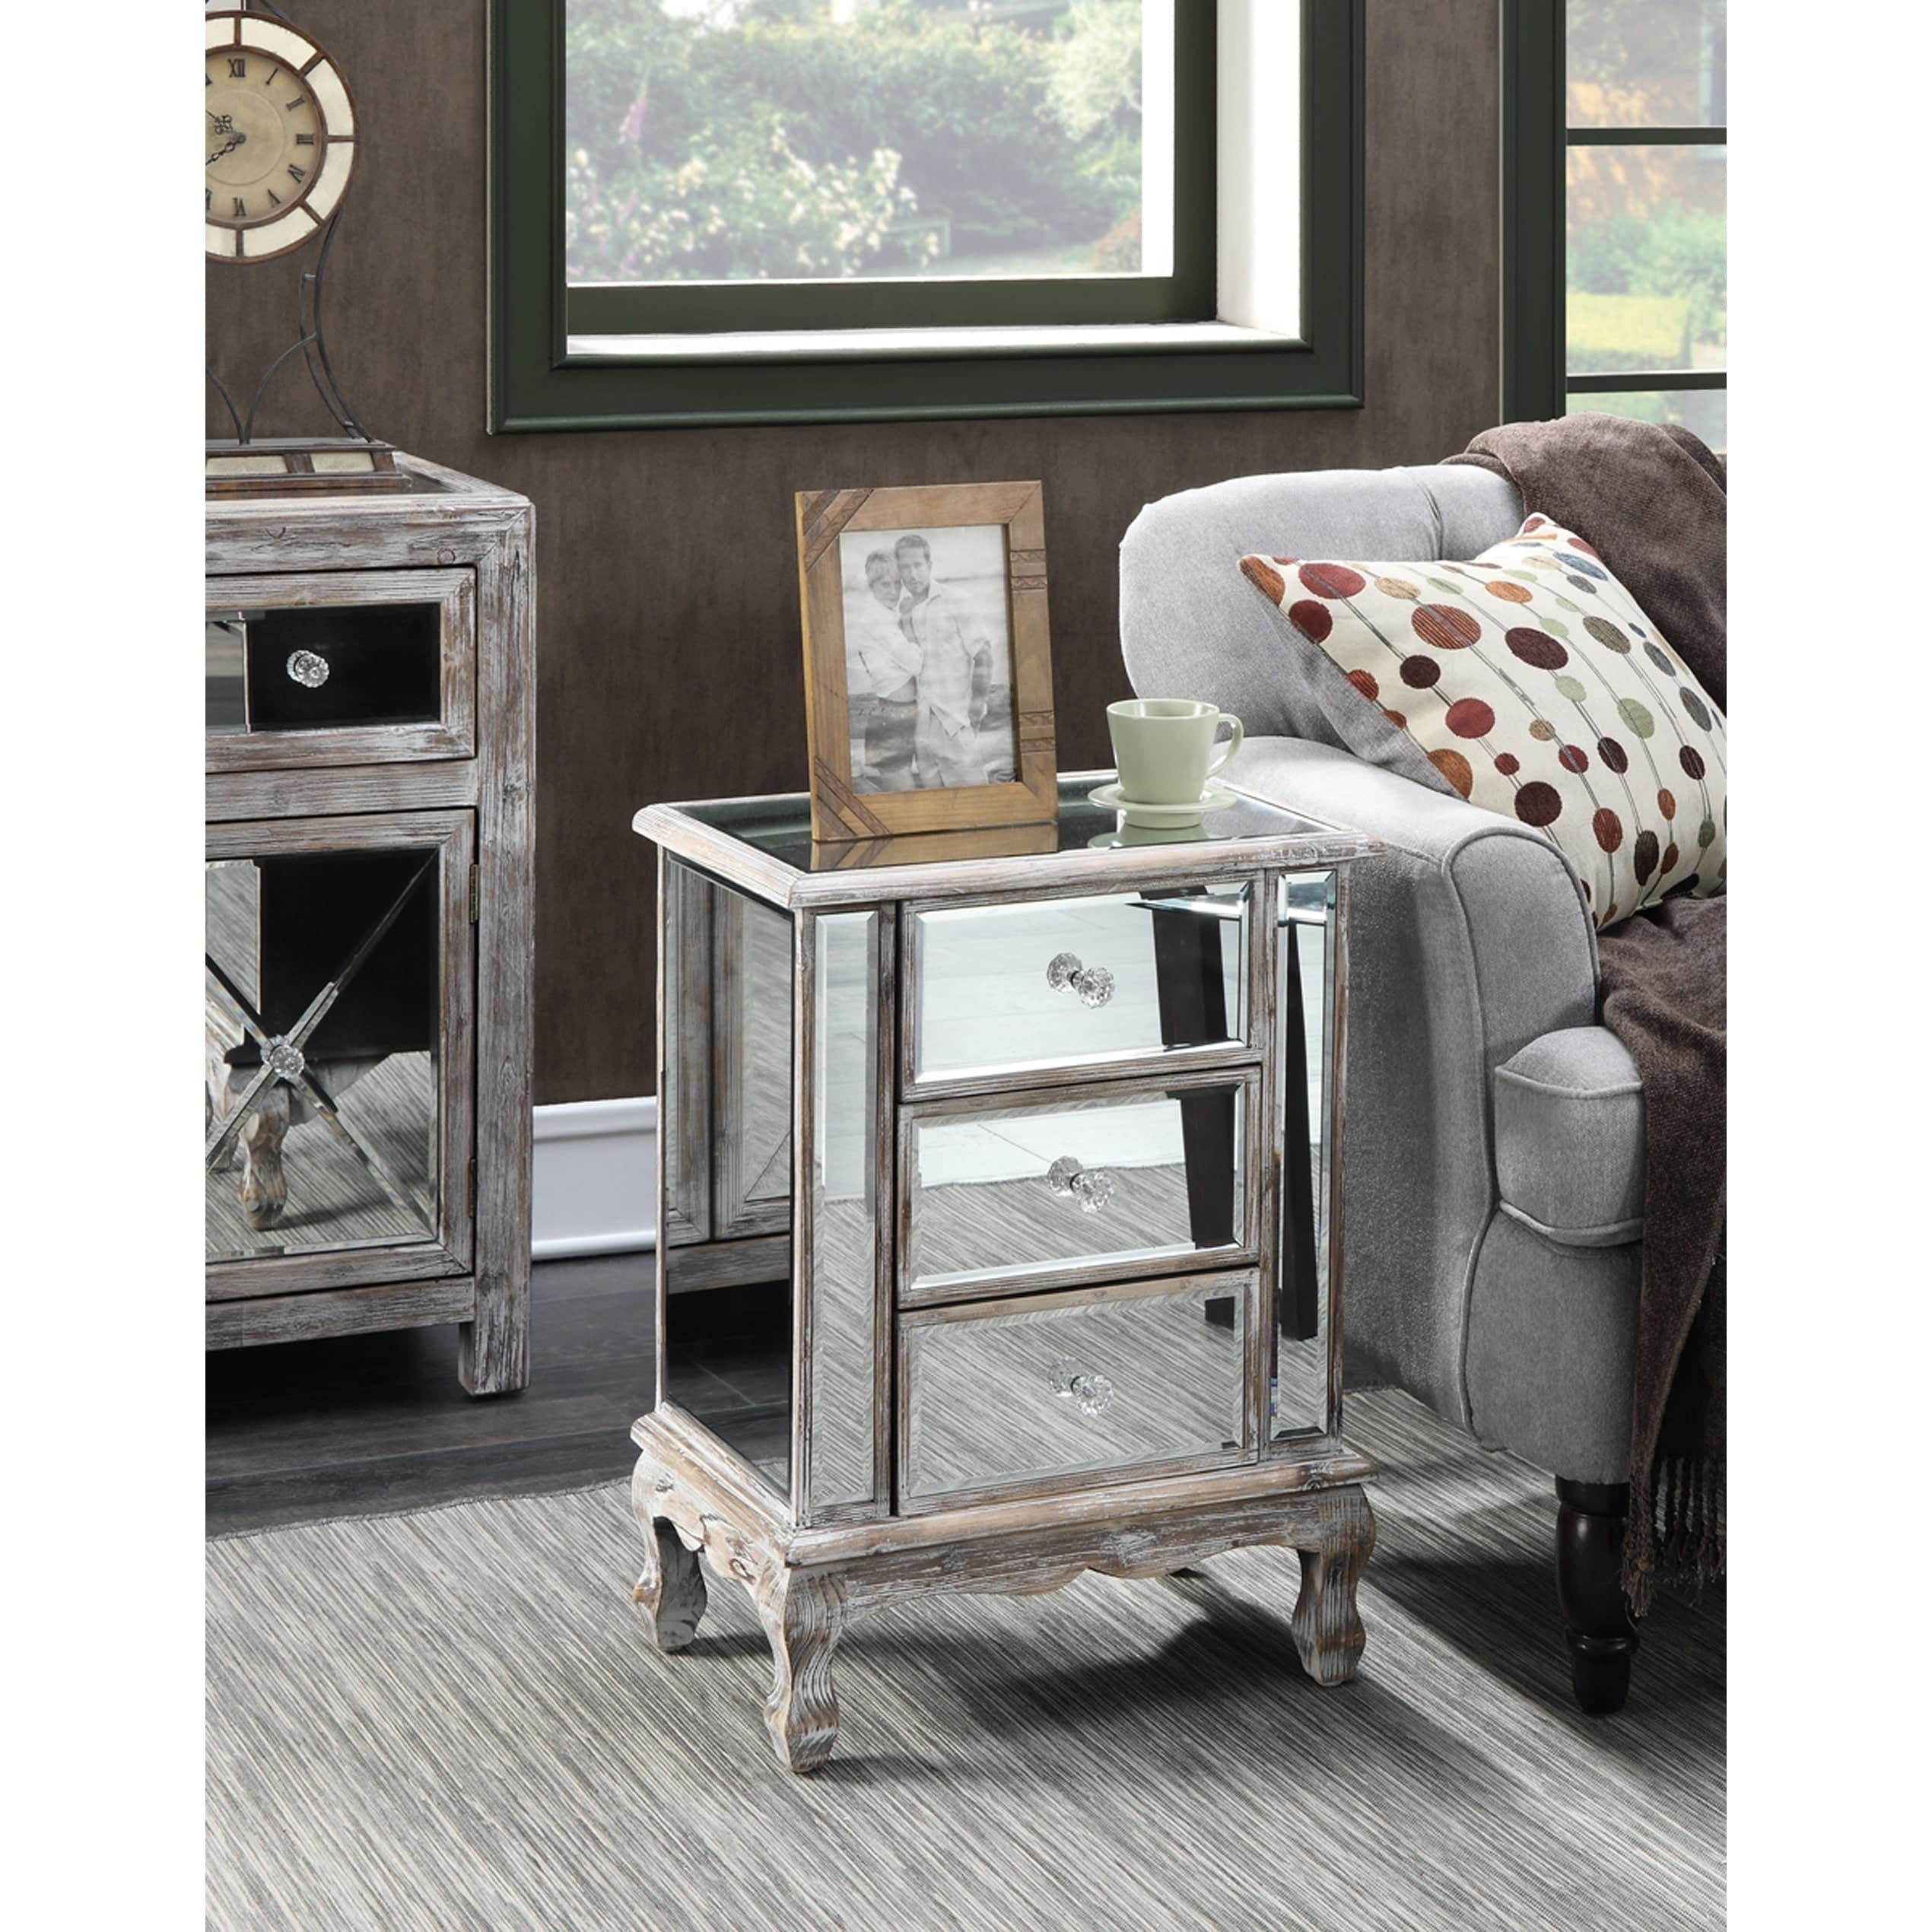 Gold Coast Vineyard 3-Drawer Mirrored End Table